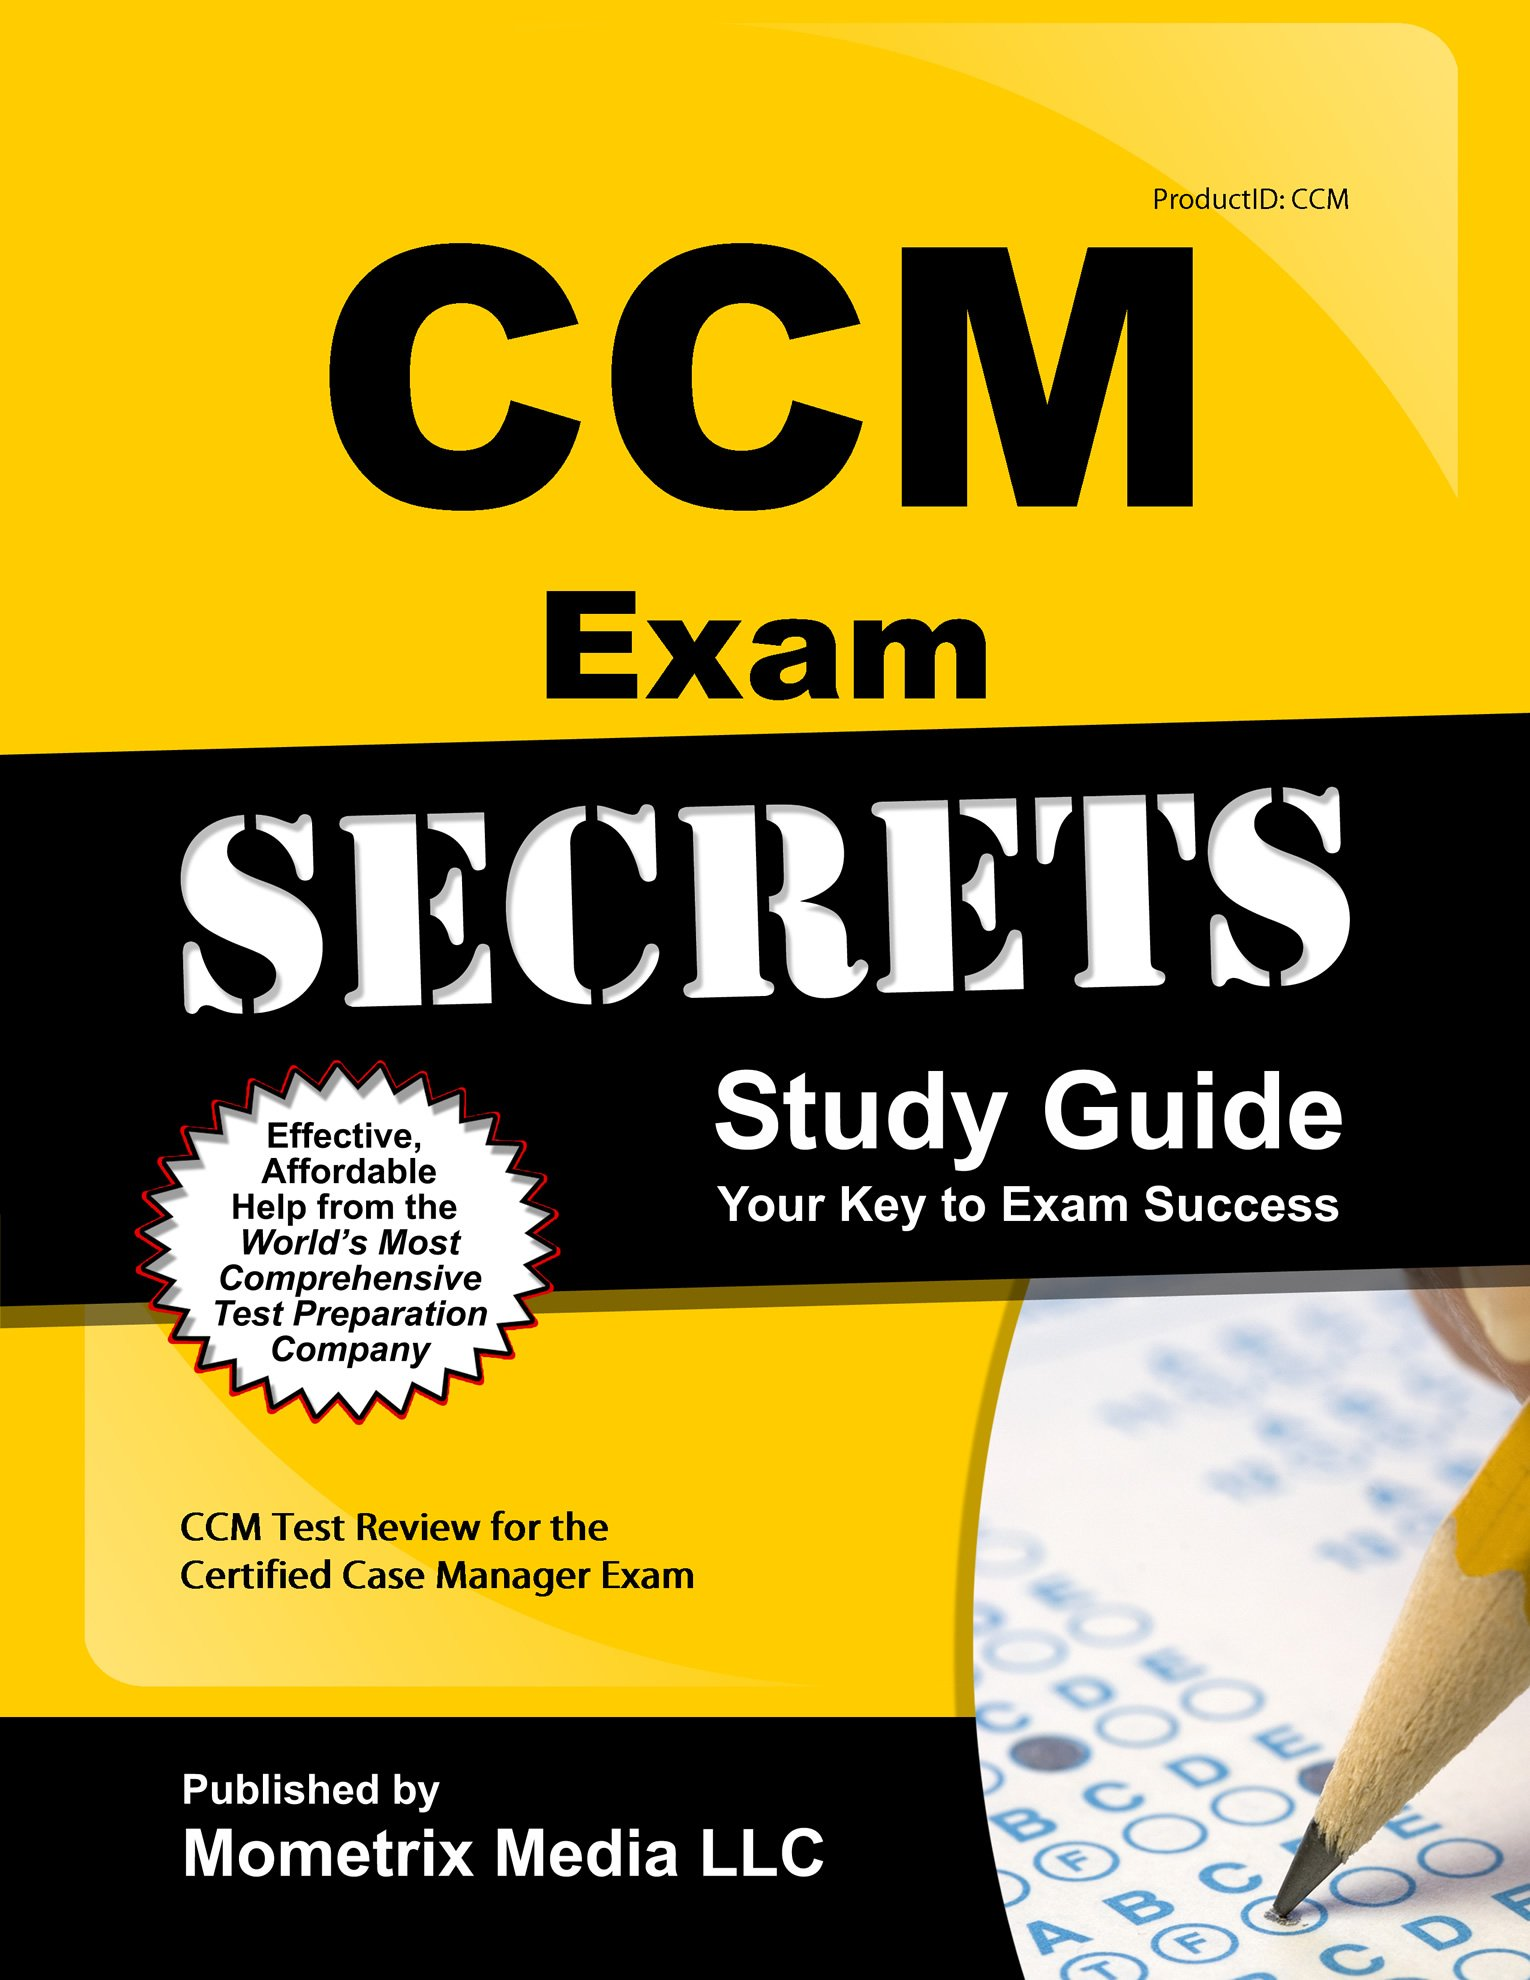 Ccm exam secrets study guide ccm test review for the certified ccm exam secrets study guide ccm test review for the certified case manager exam amazon books 1betcityfo Images